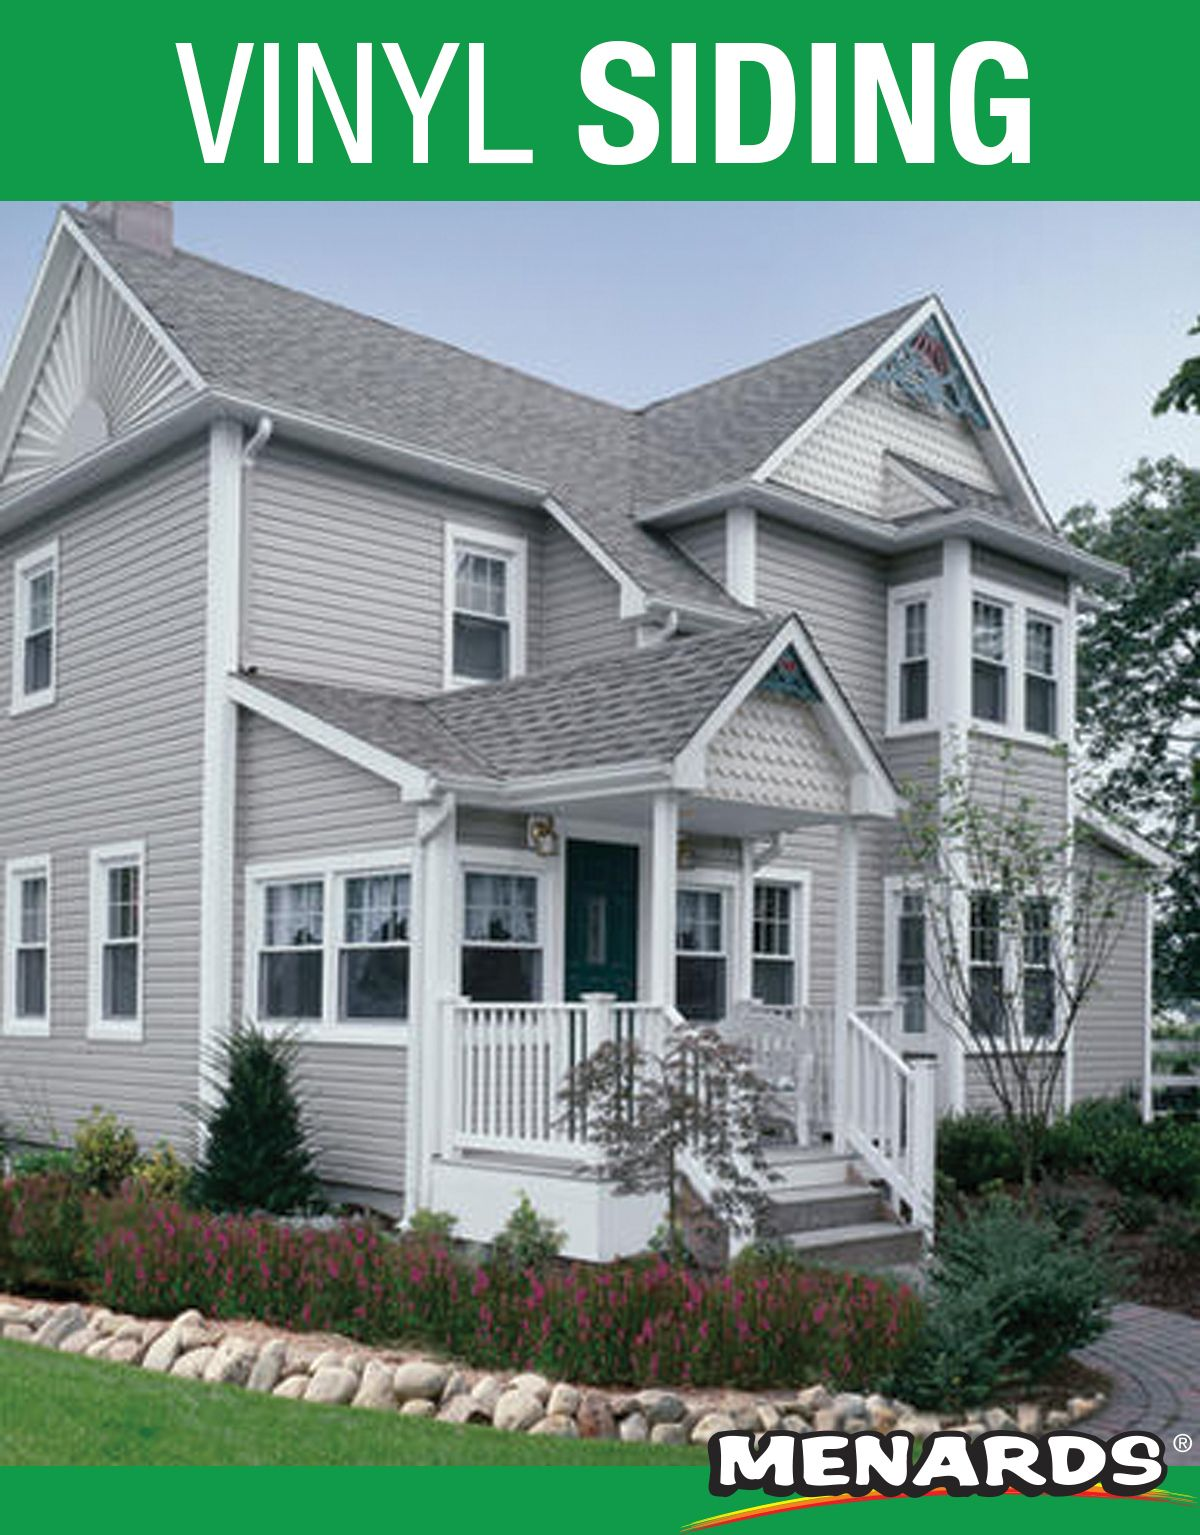 Mainstreet Double 4 Clapboard Siding Offers Value With The Benefits Of A Premium Panel A Reinforced Rolled Over N Certainteed Clapboard Siding Sterling Grey